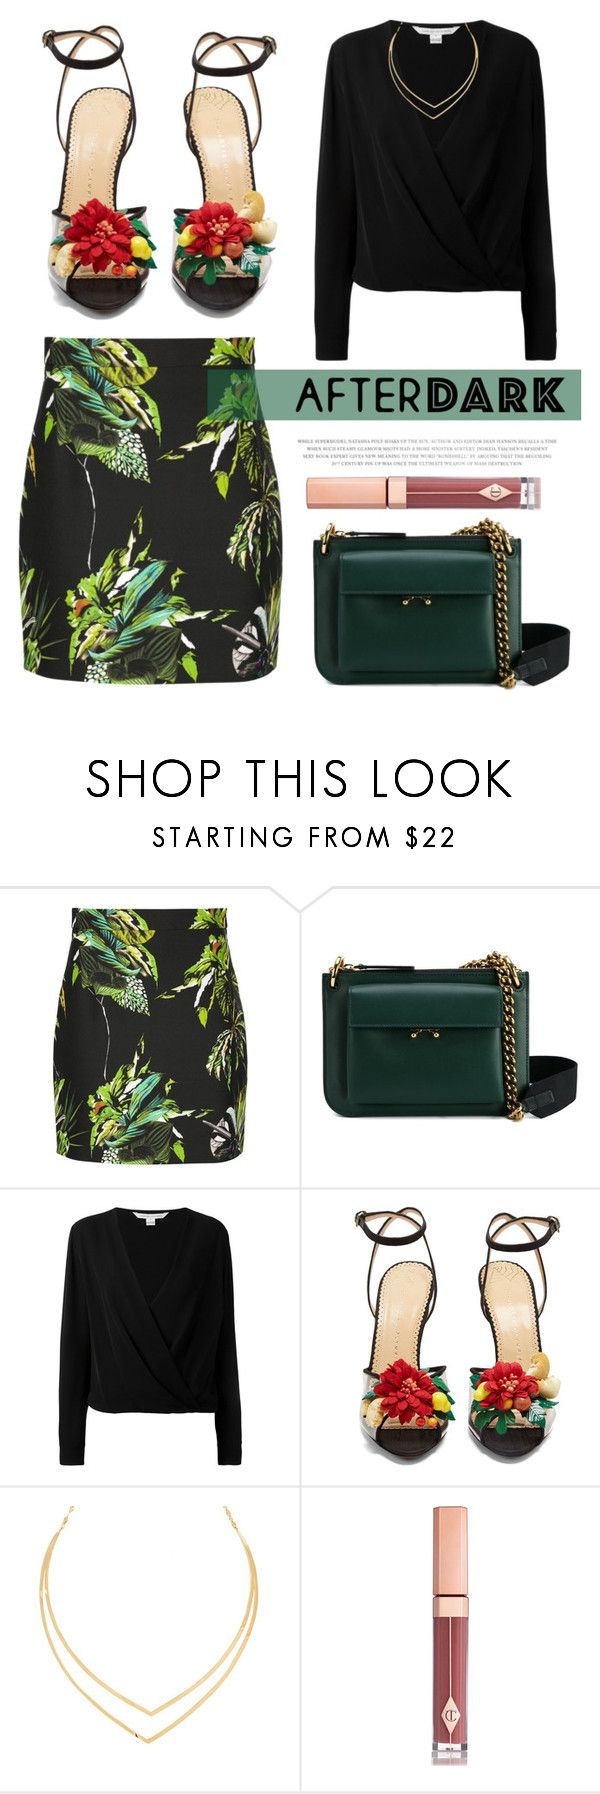 """Copacabana"" by blueyed ❤ liked on Polyvore featuring Proenza Schouler, Marni, Diane Von Furstenberg, Charlotte Olympia, Lana and Charlotte Tilbury"